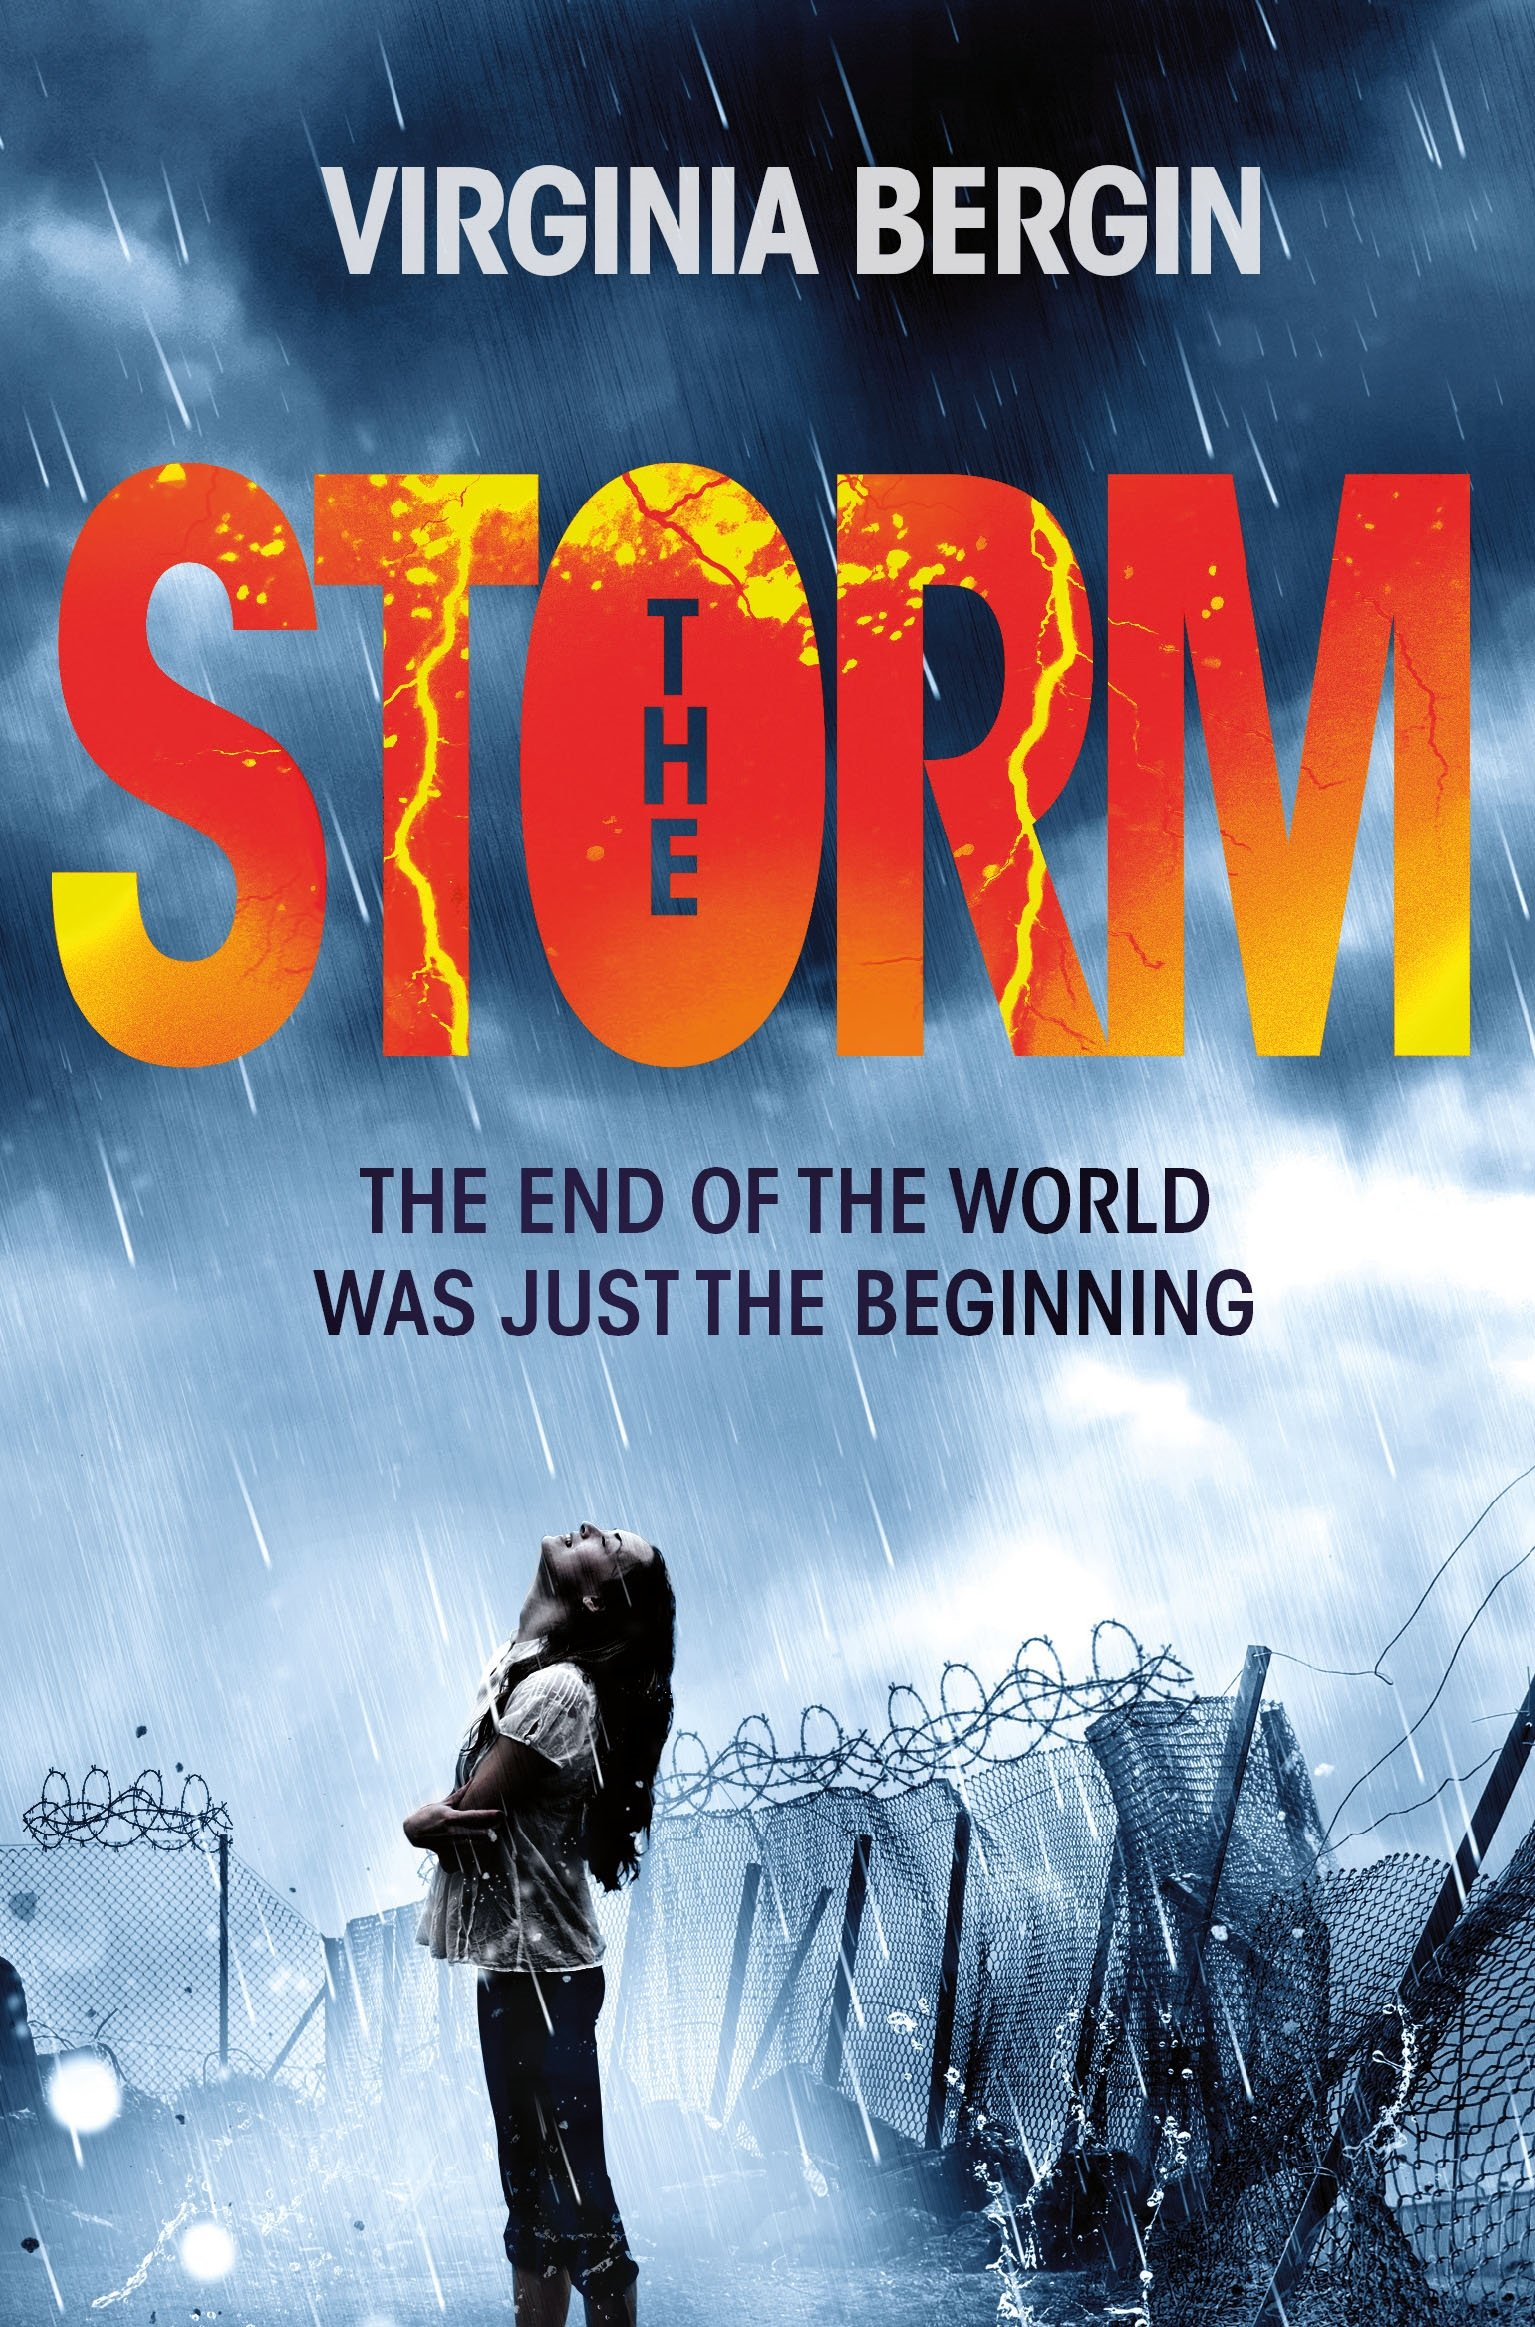 Buy THE STORM by Virginia Bergin